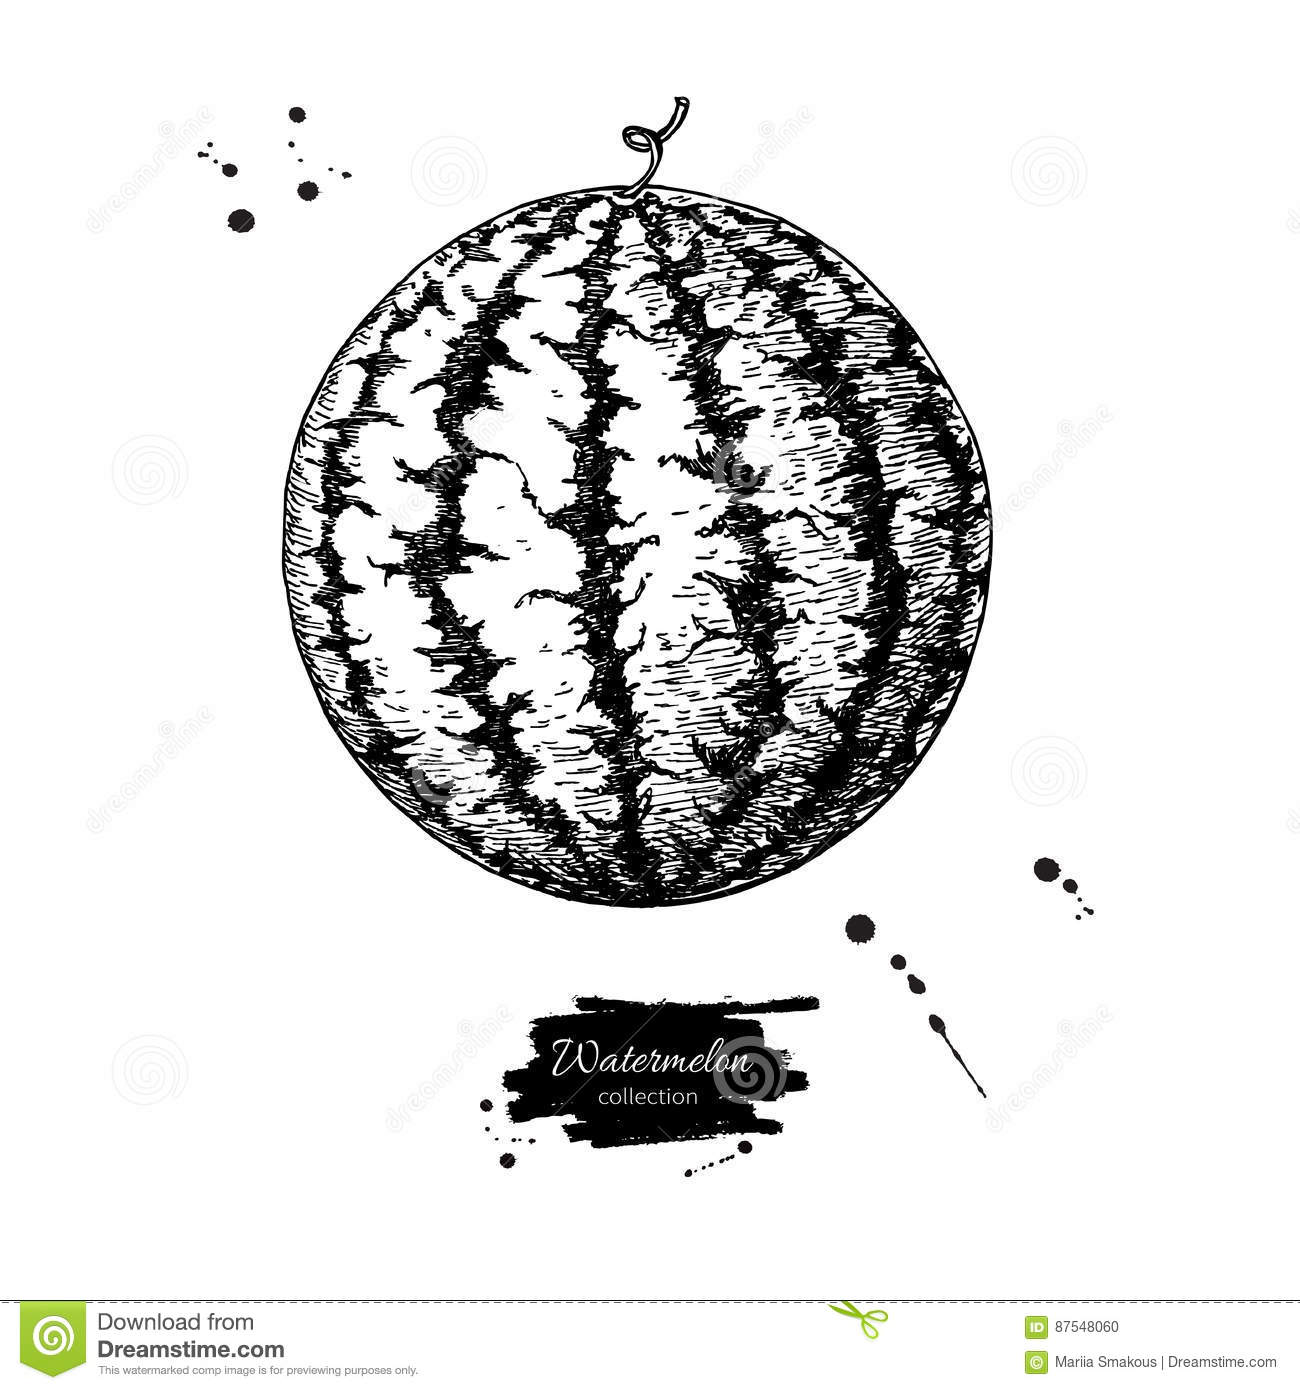 Watermelon vector drawing. hand drawn berry on white background.